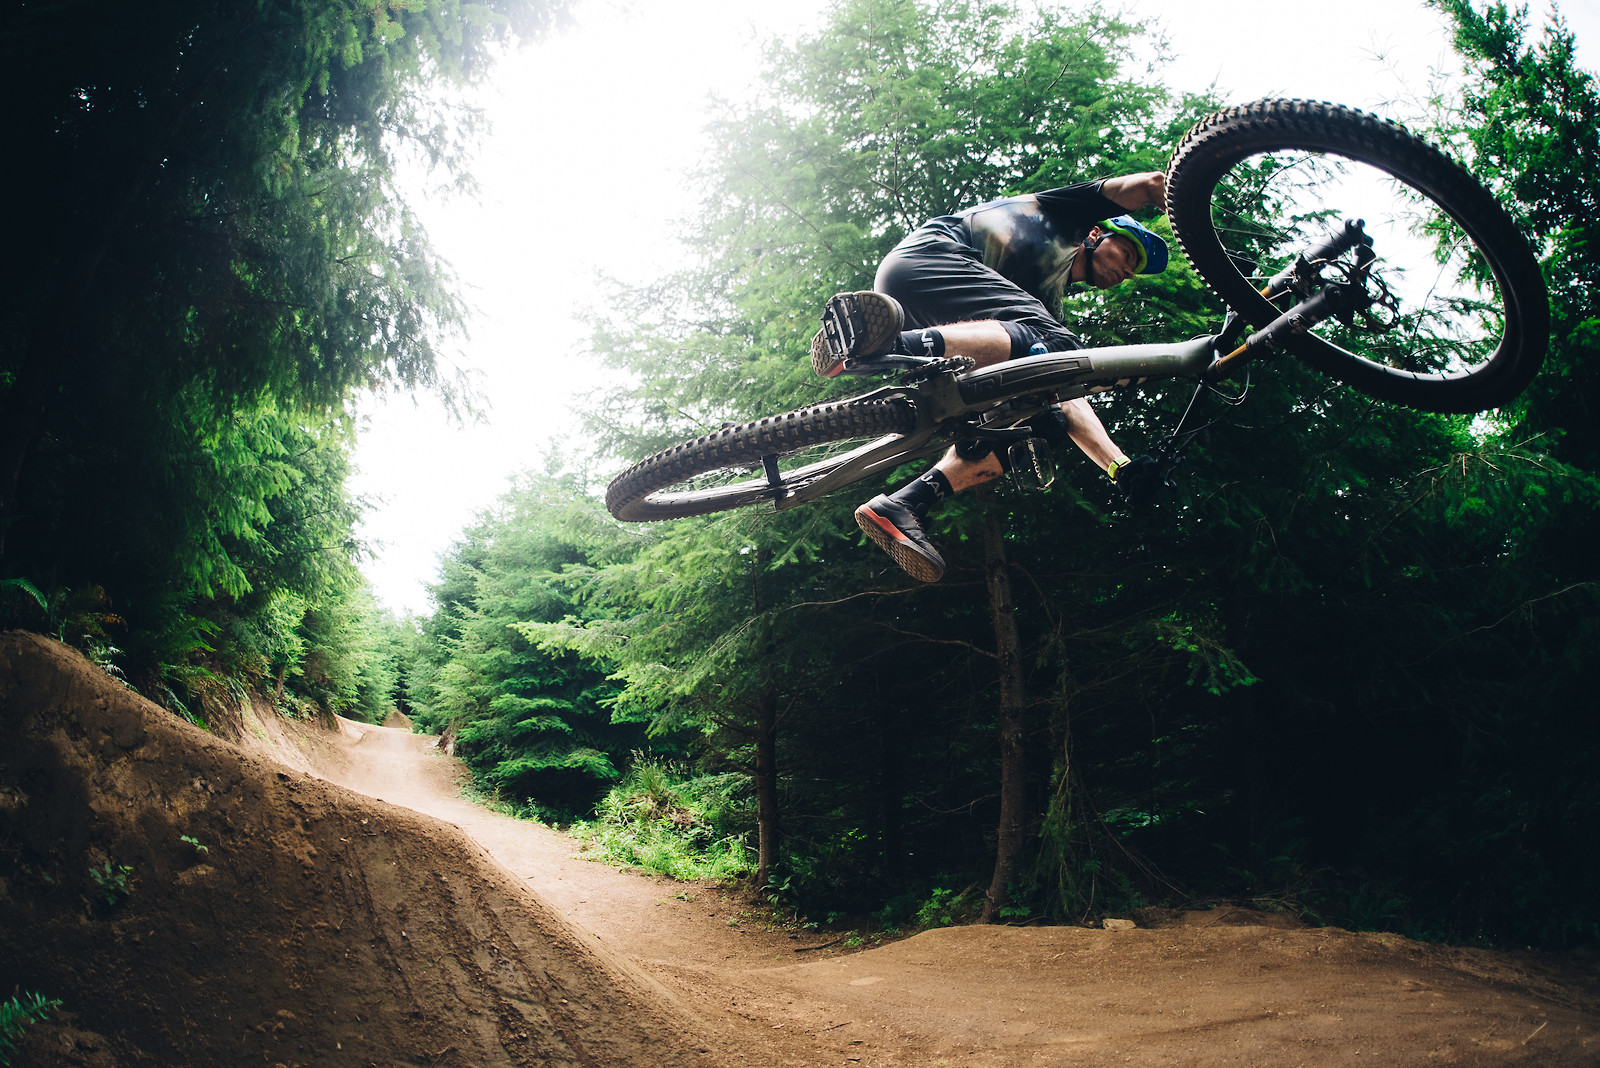 Downside  - Schilly - Mountain Biking Pictures - Vital MTB